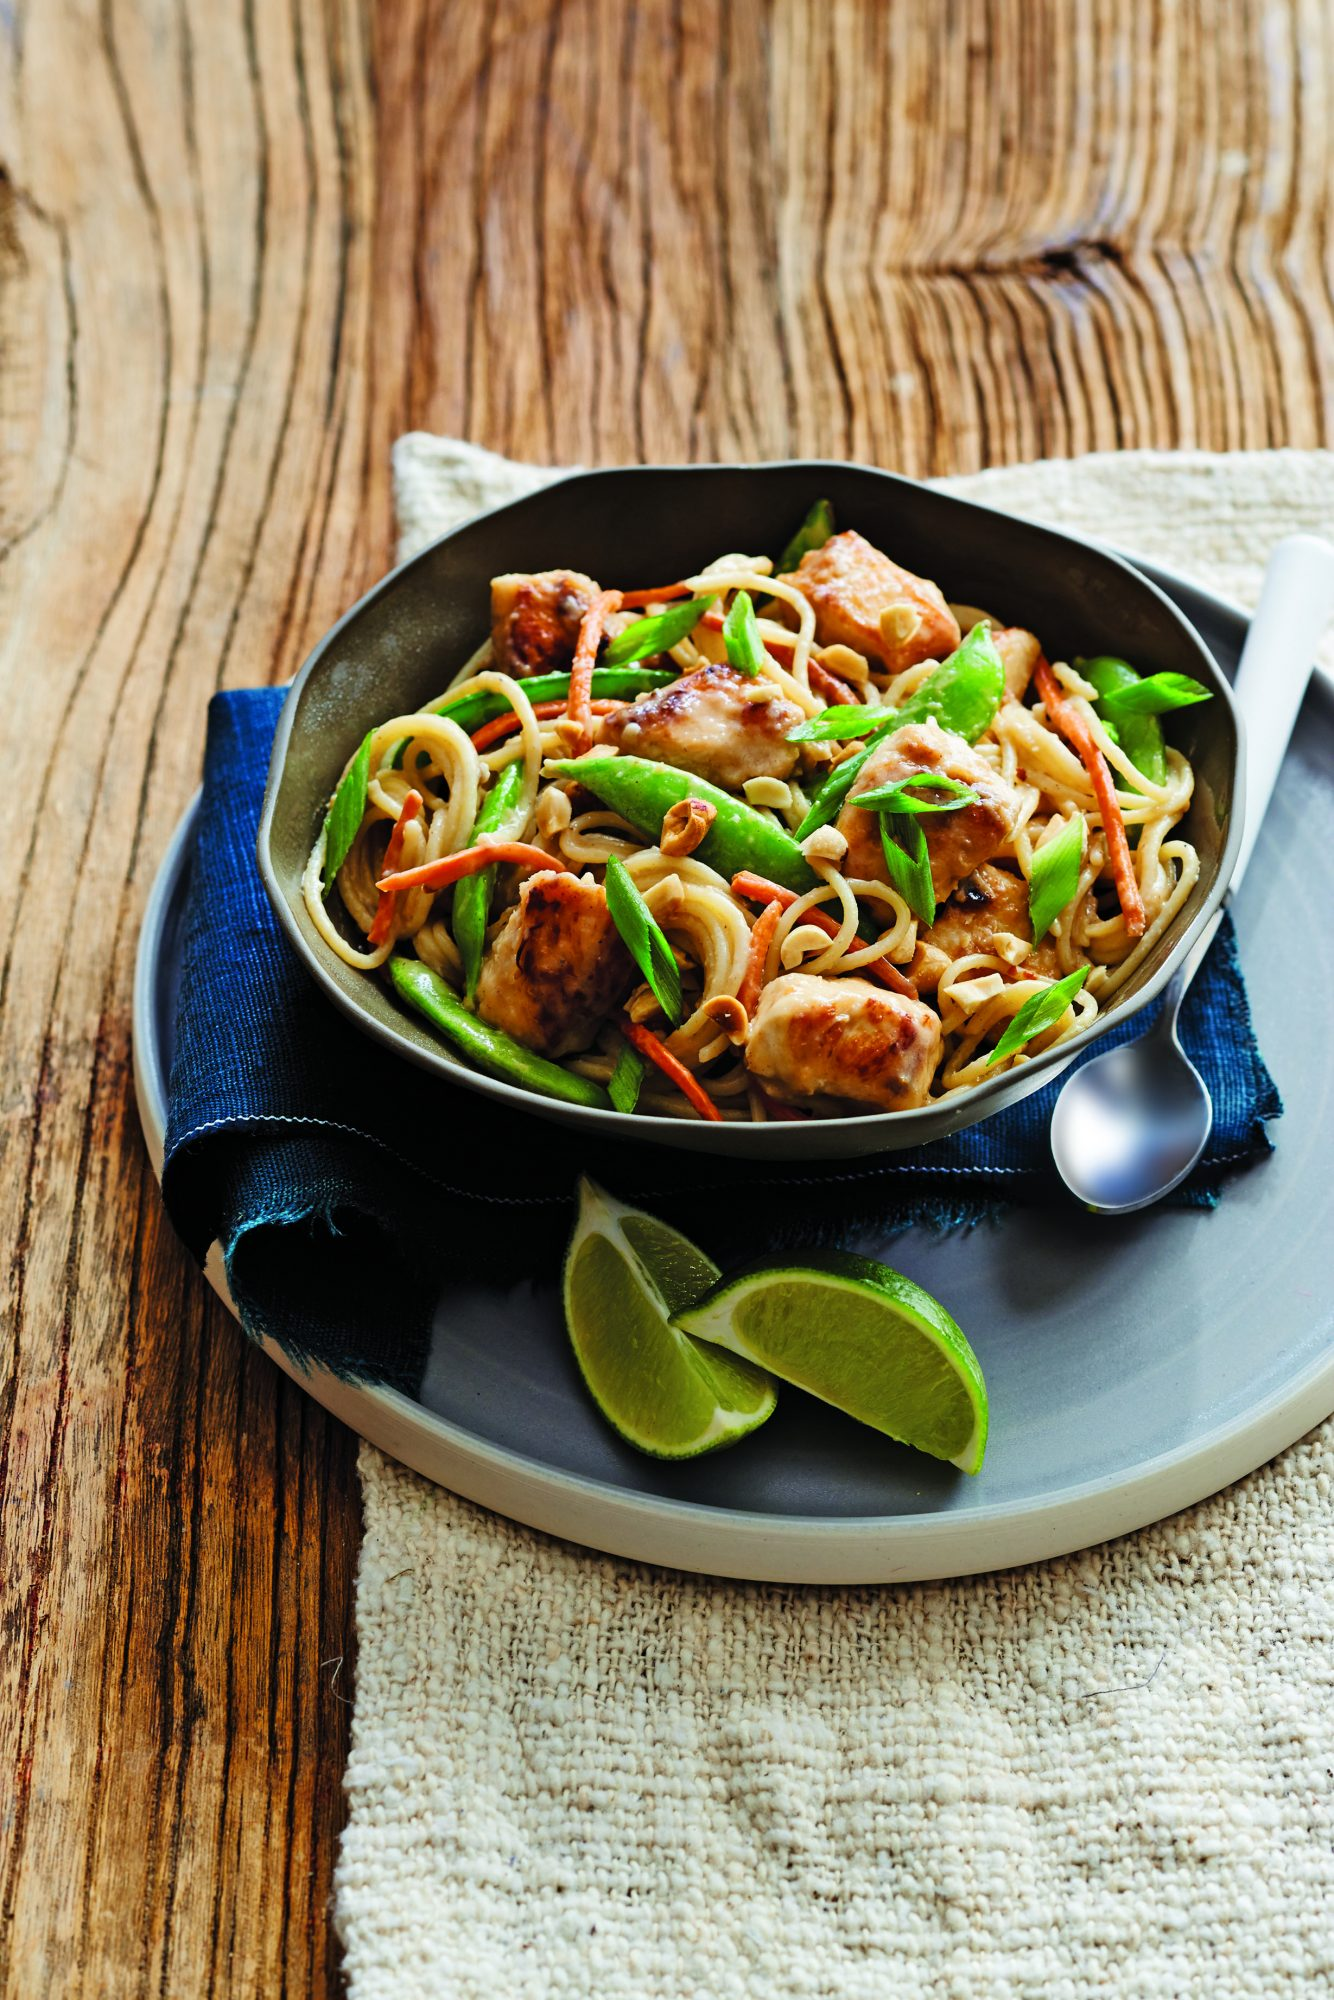 Peanut Chicken and Sugar Snap Peas with Noodles